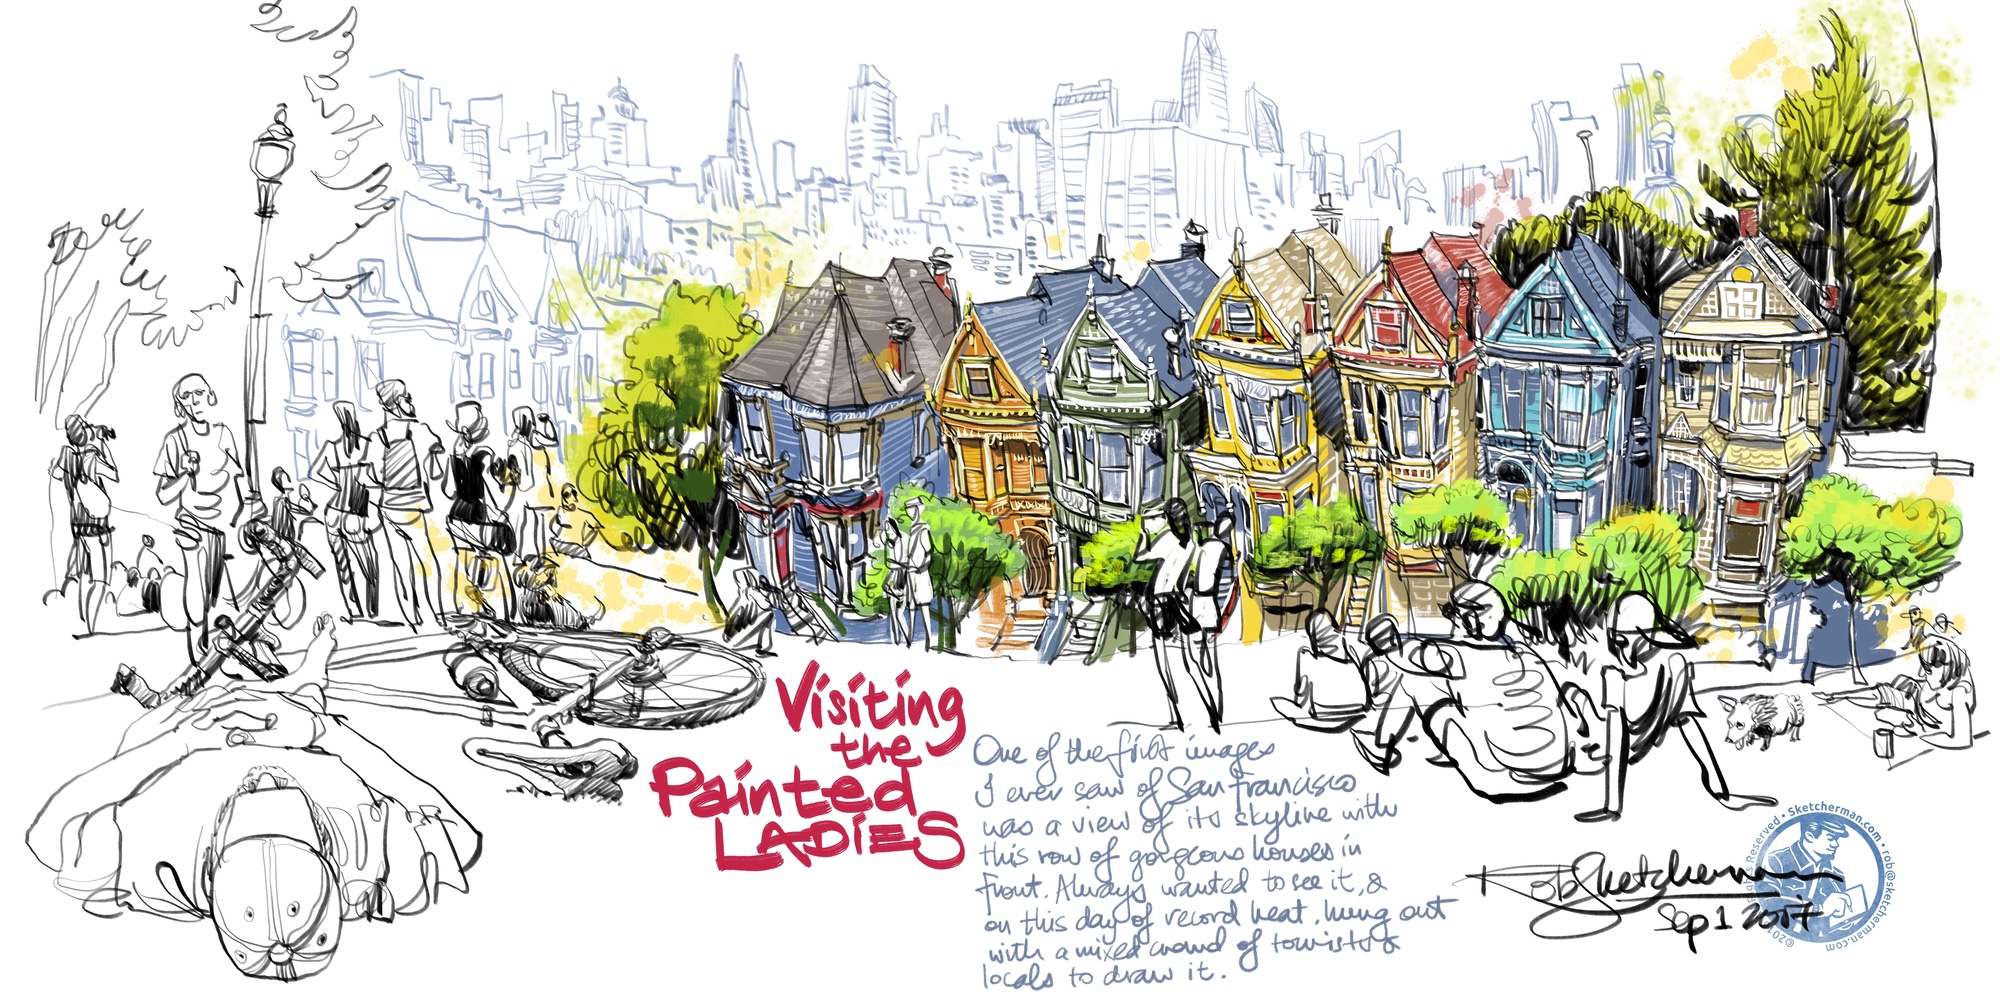 US_2017-Painted Ladies-San Francisco-Sketcherman.jpg